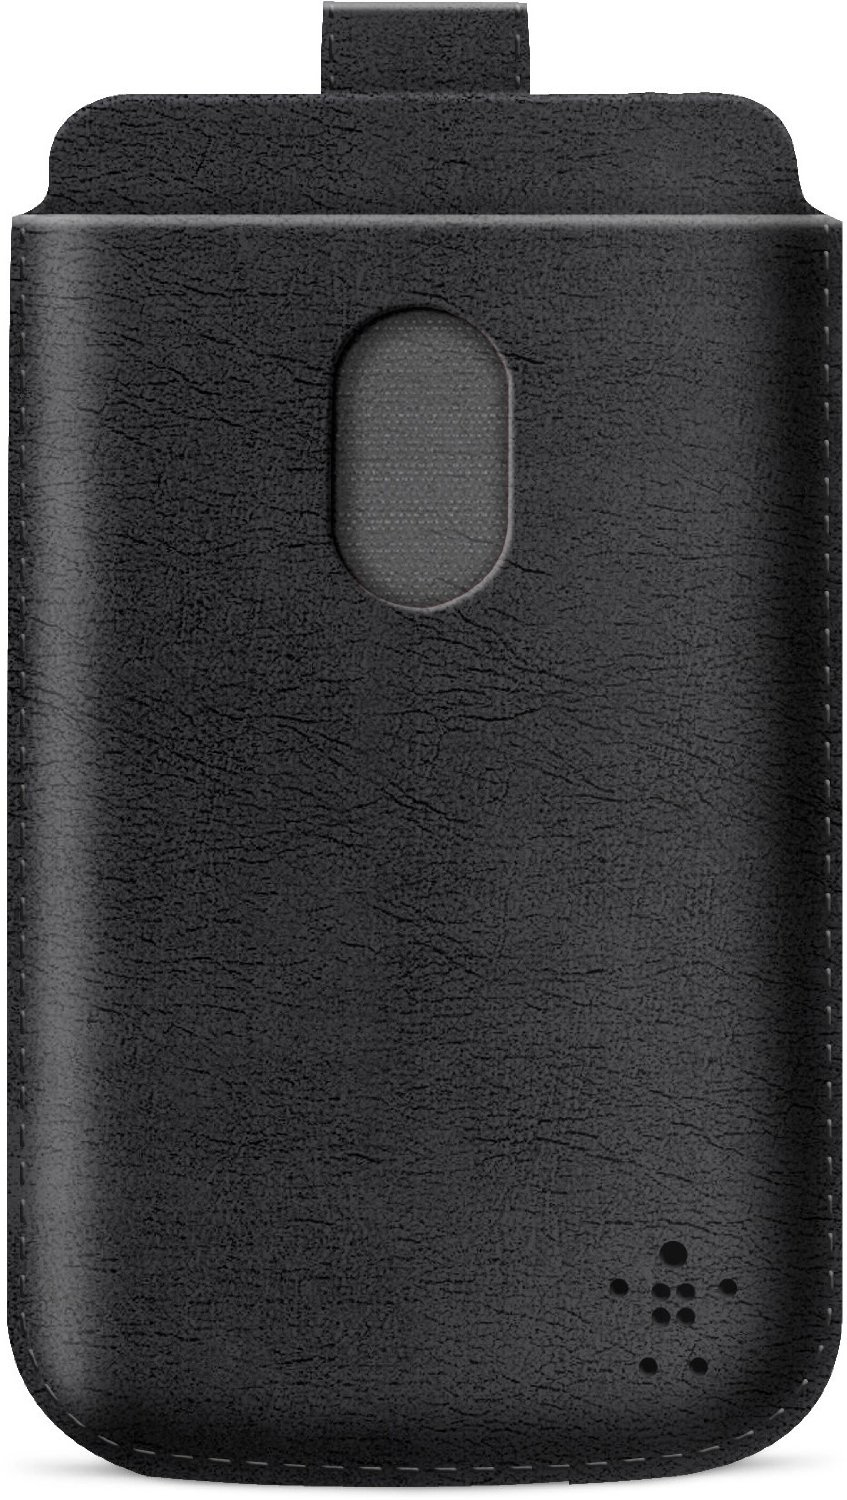 Belkin F8M573VFC00 mobile phone case